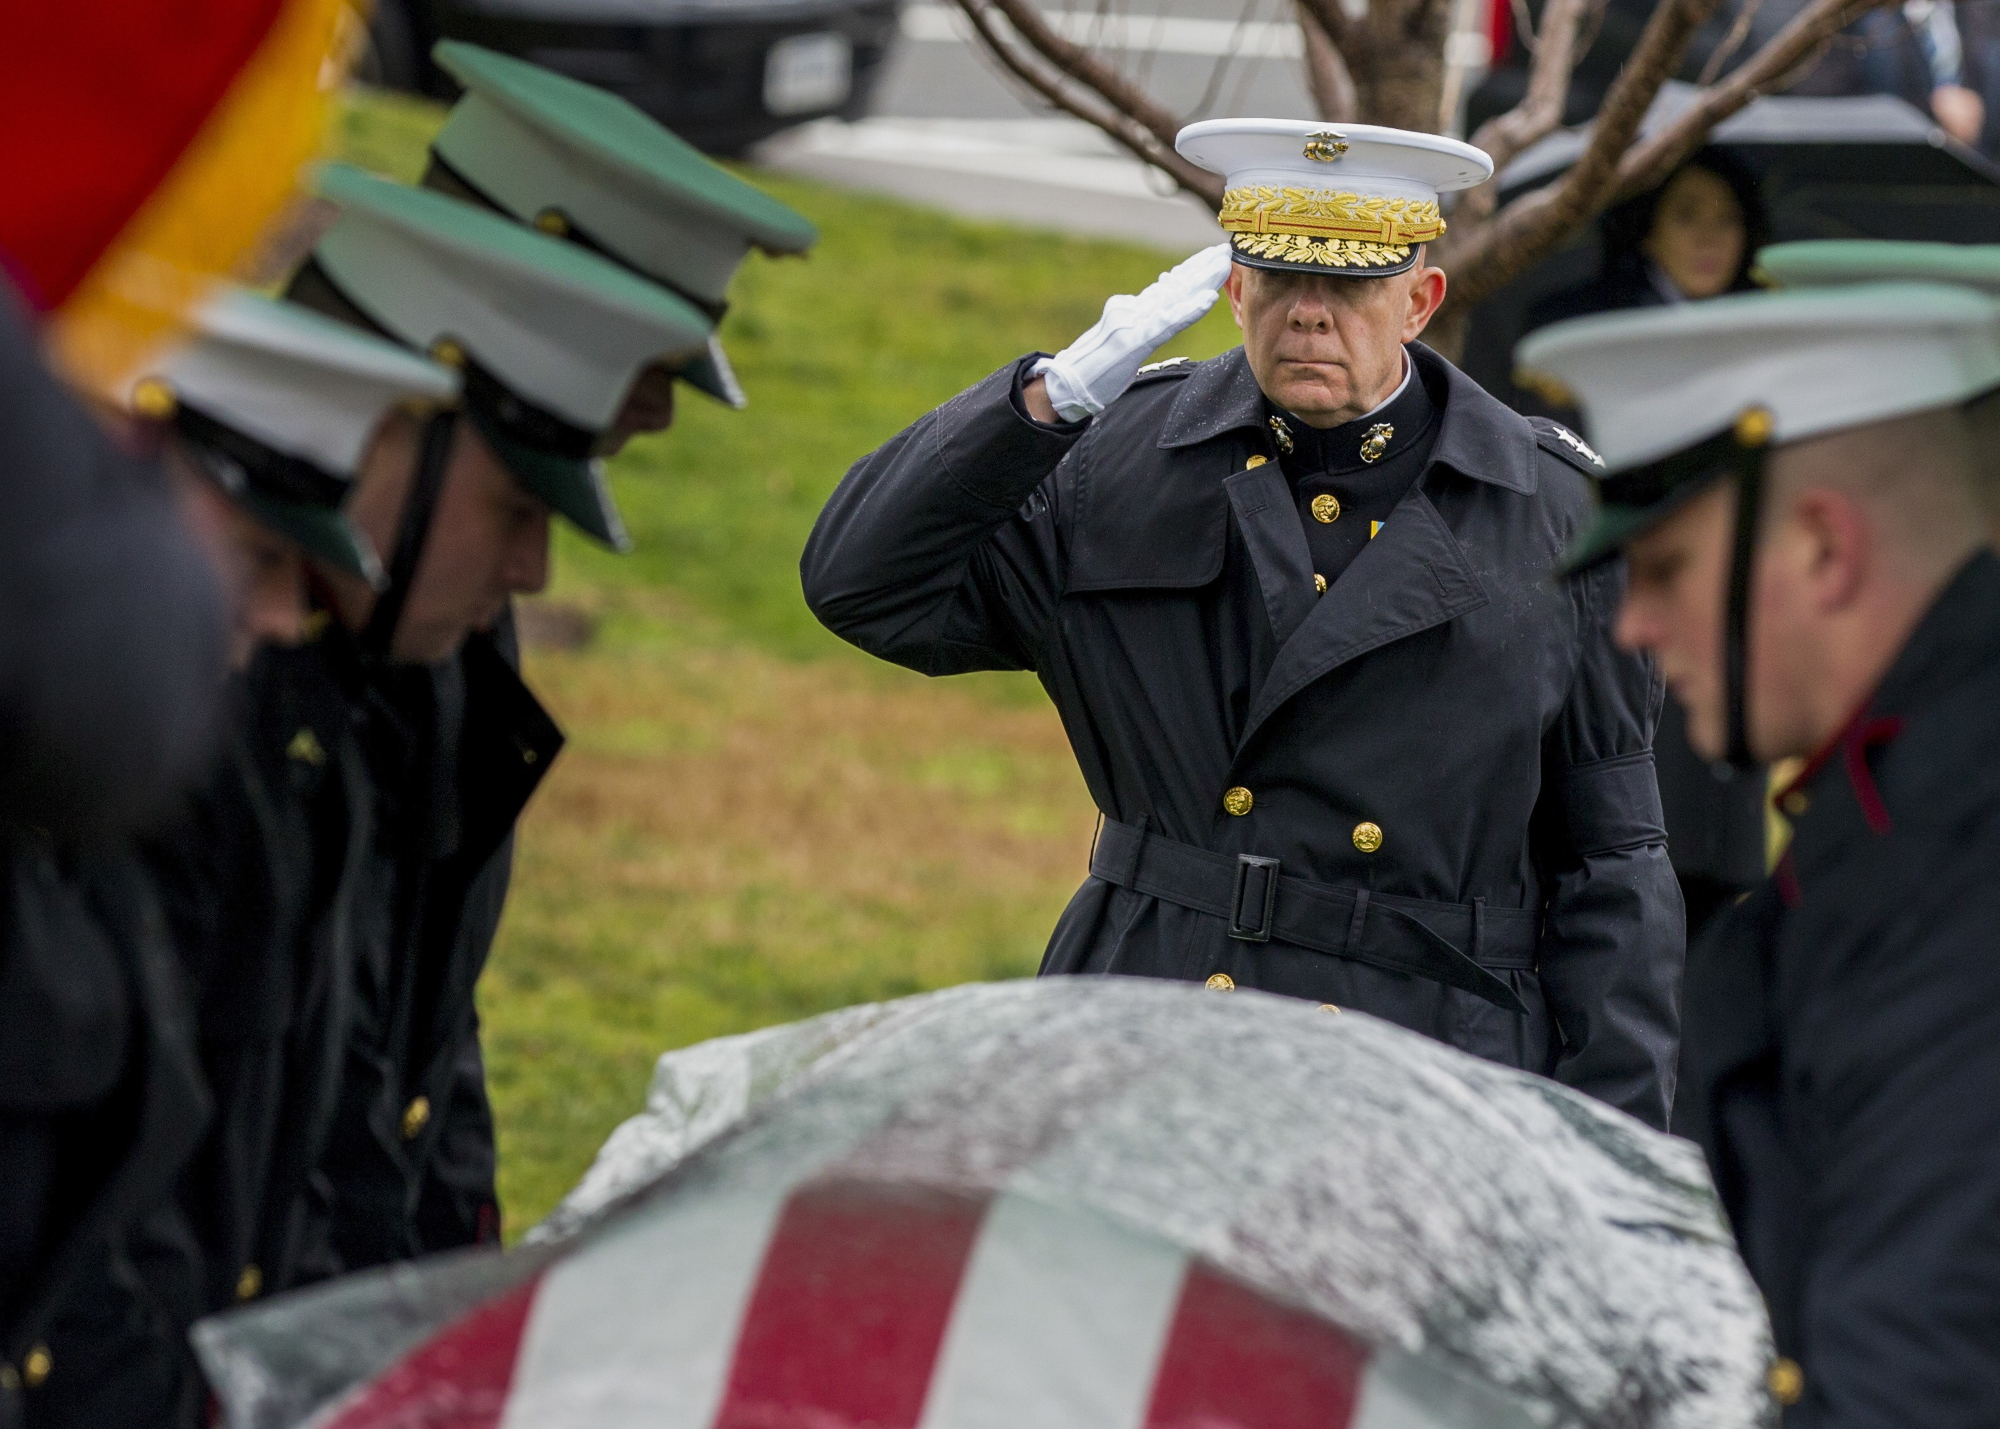 Commandant of the Marine Corps, Gen. David H. Berger salutes the casket of retired 28th Commandant of the Marine Corps Gen. Paul X. Kelley during Kelley's funeral service at Fort Myer Memorial Chapel in Virginia on Feb. 13, 2020. Kelley served as CMC from 1983 to 1987. (Sgt. Daisha R. Johnson/Marine Corps)